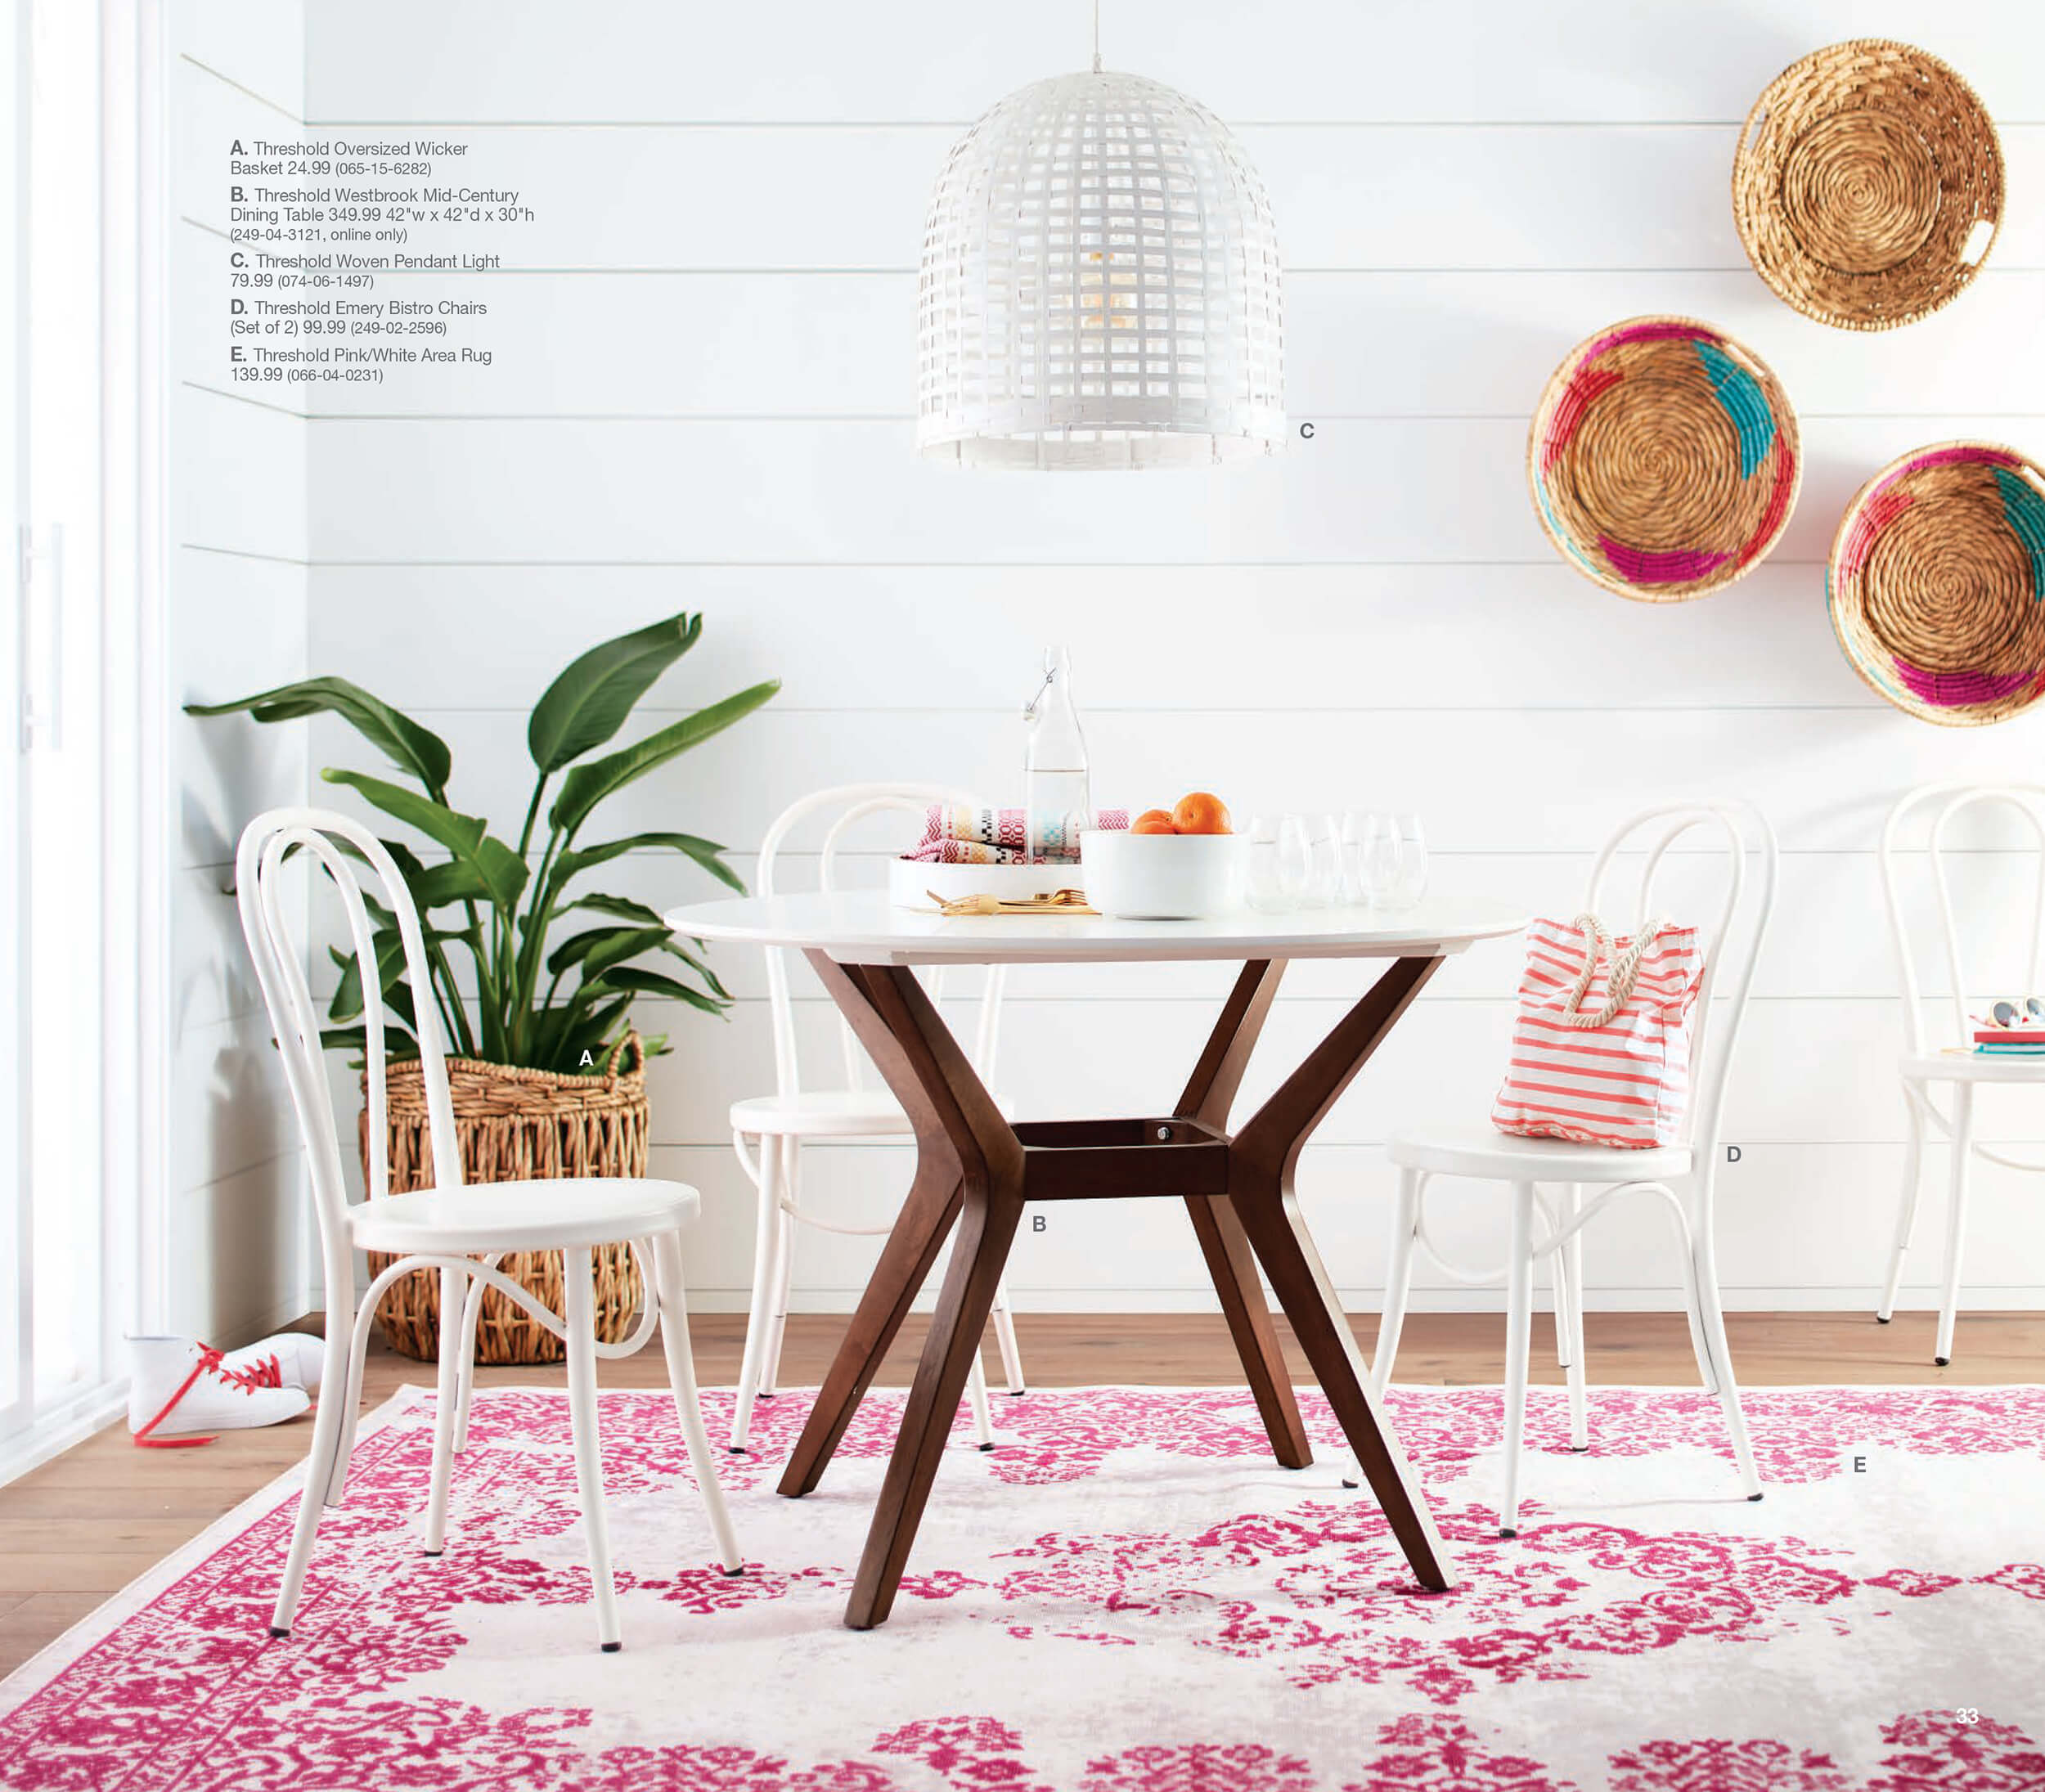 new target home product and emily henderson first look spring catalog threshold accent table walnut small wood side wall decor pulaski sofa chair set narrow cabinet pottery barn